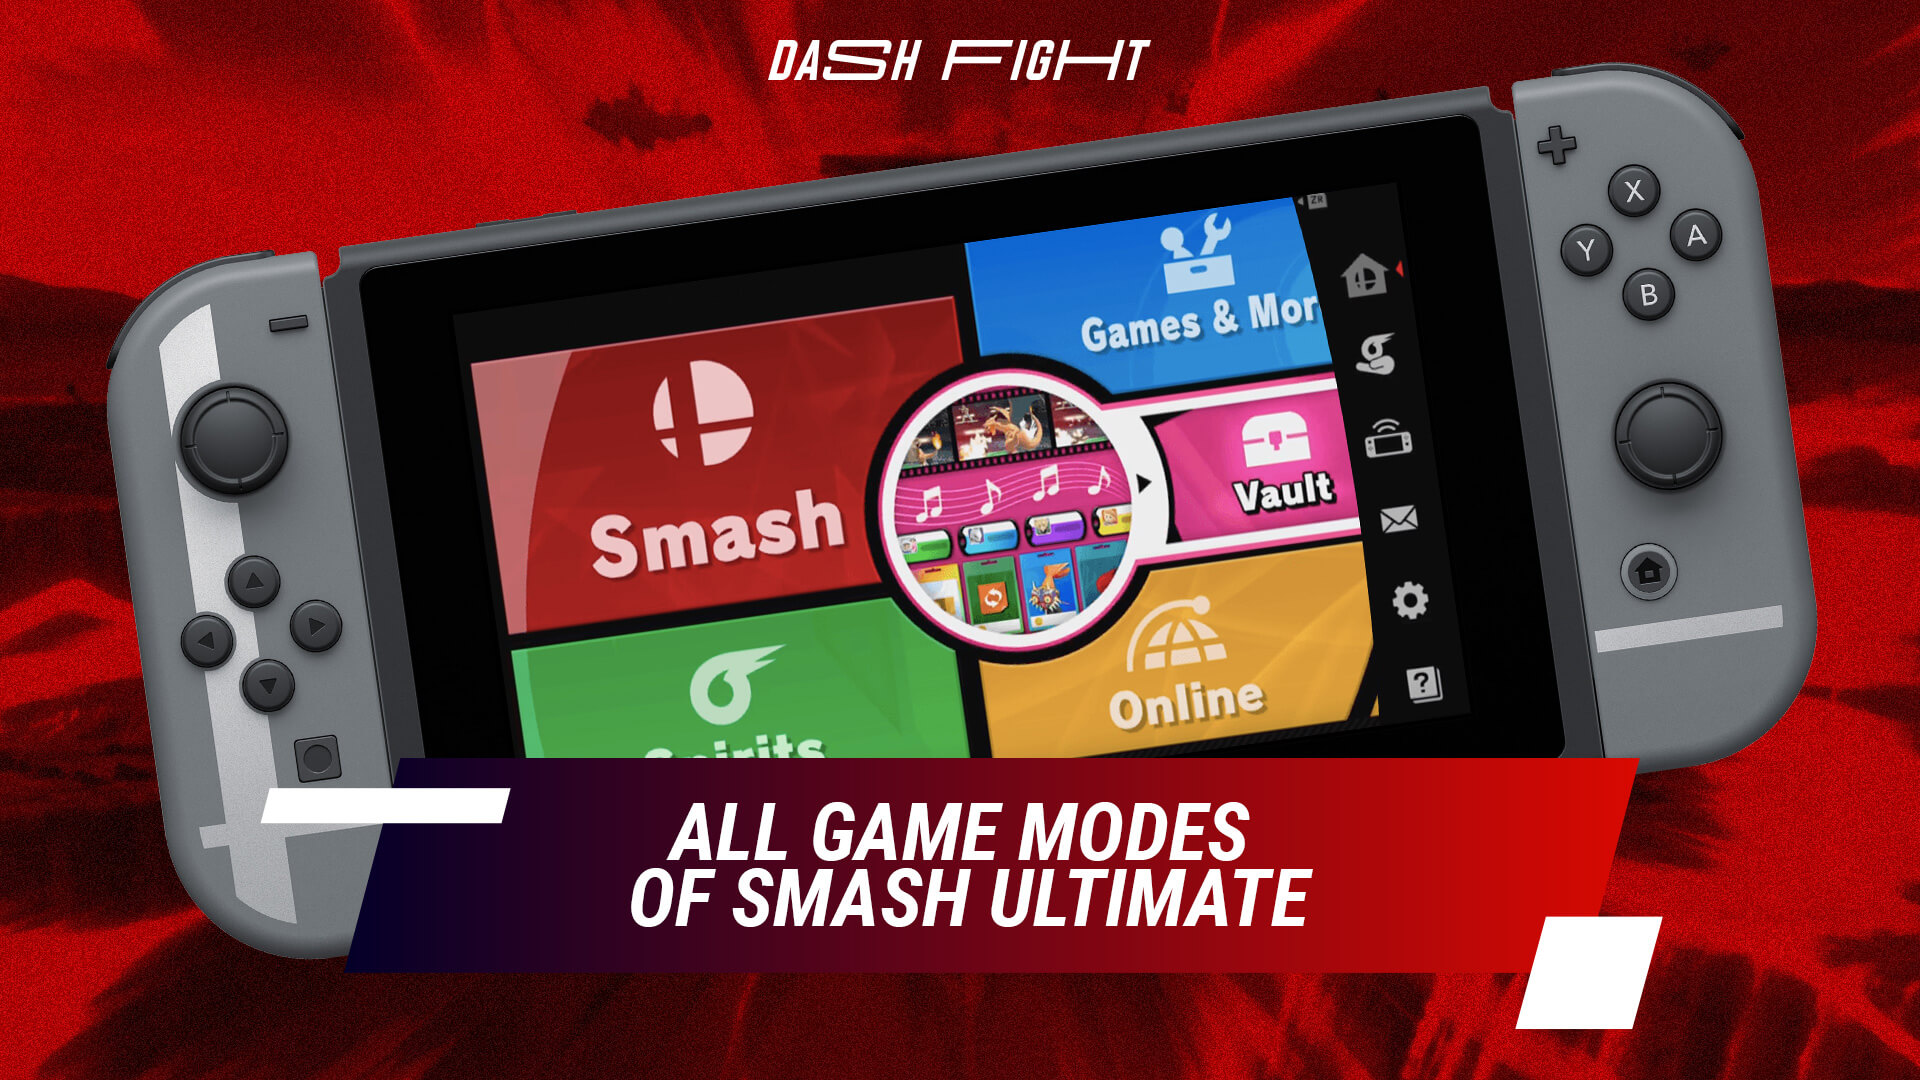 Ultimate modes of Super Smash Bros.